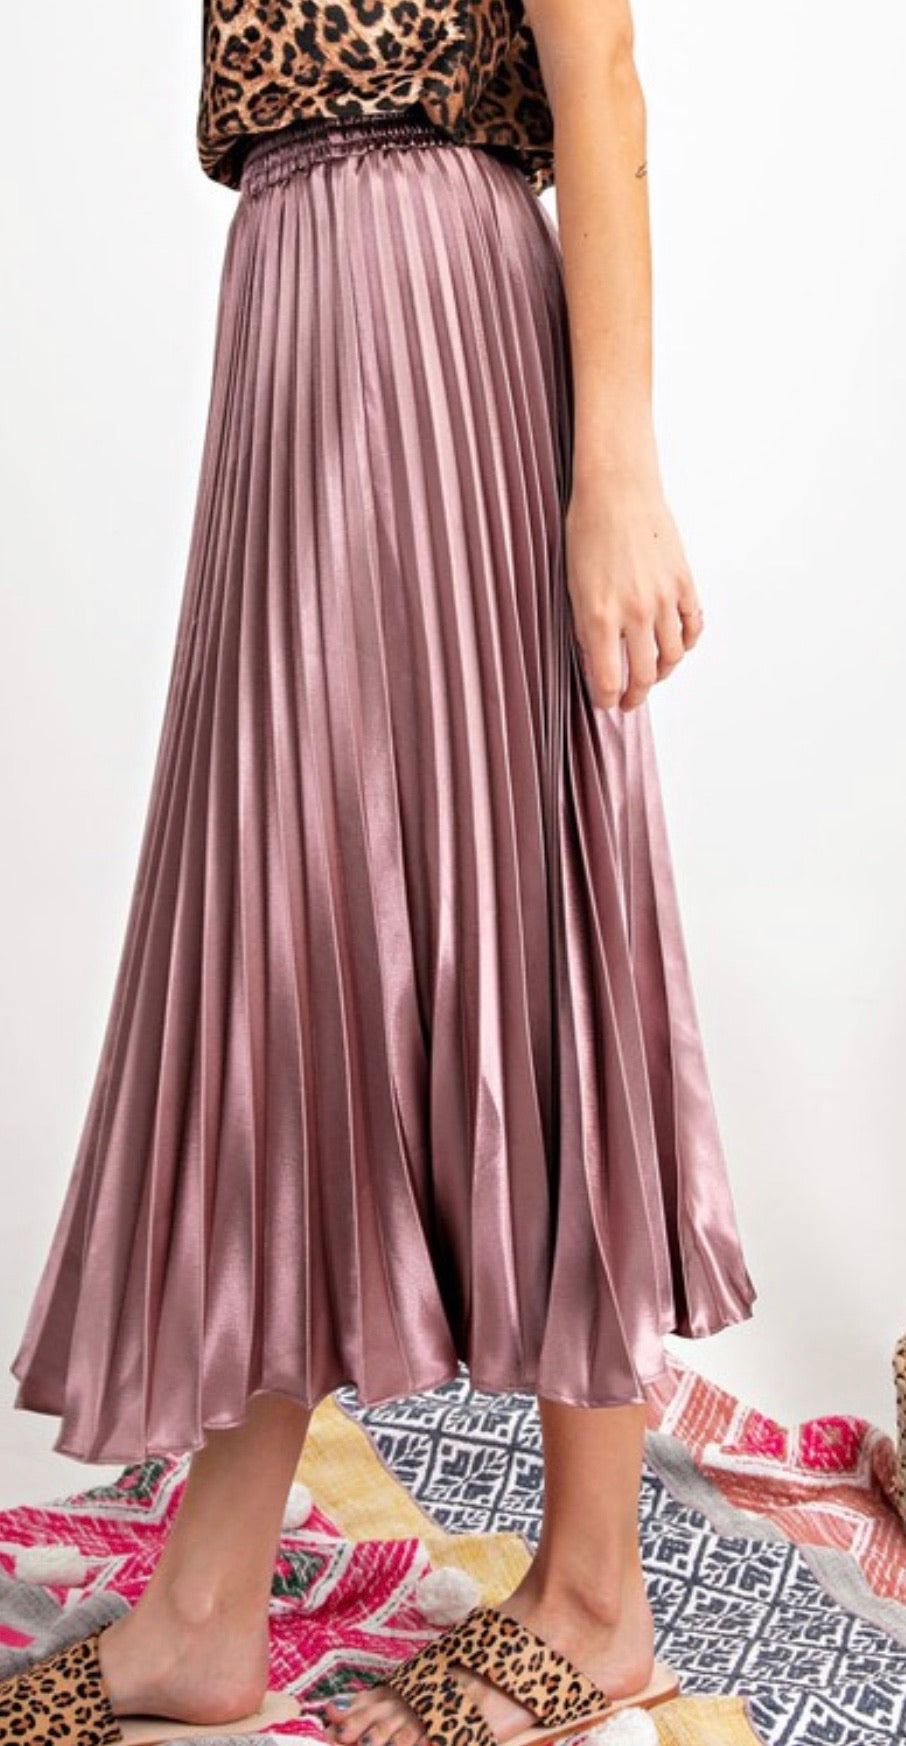 Rose pleated satin maxi skirt